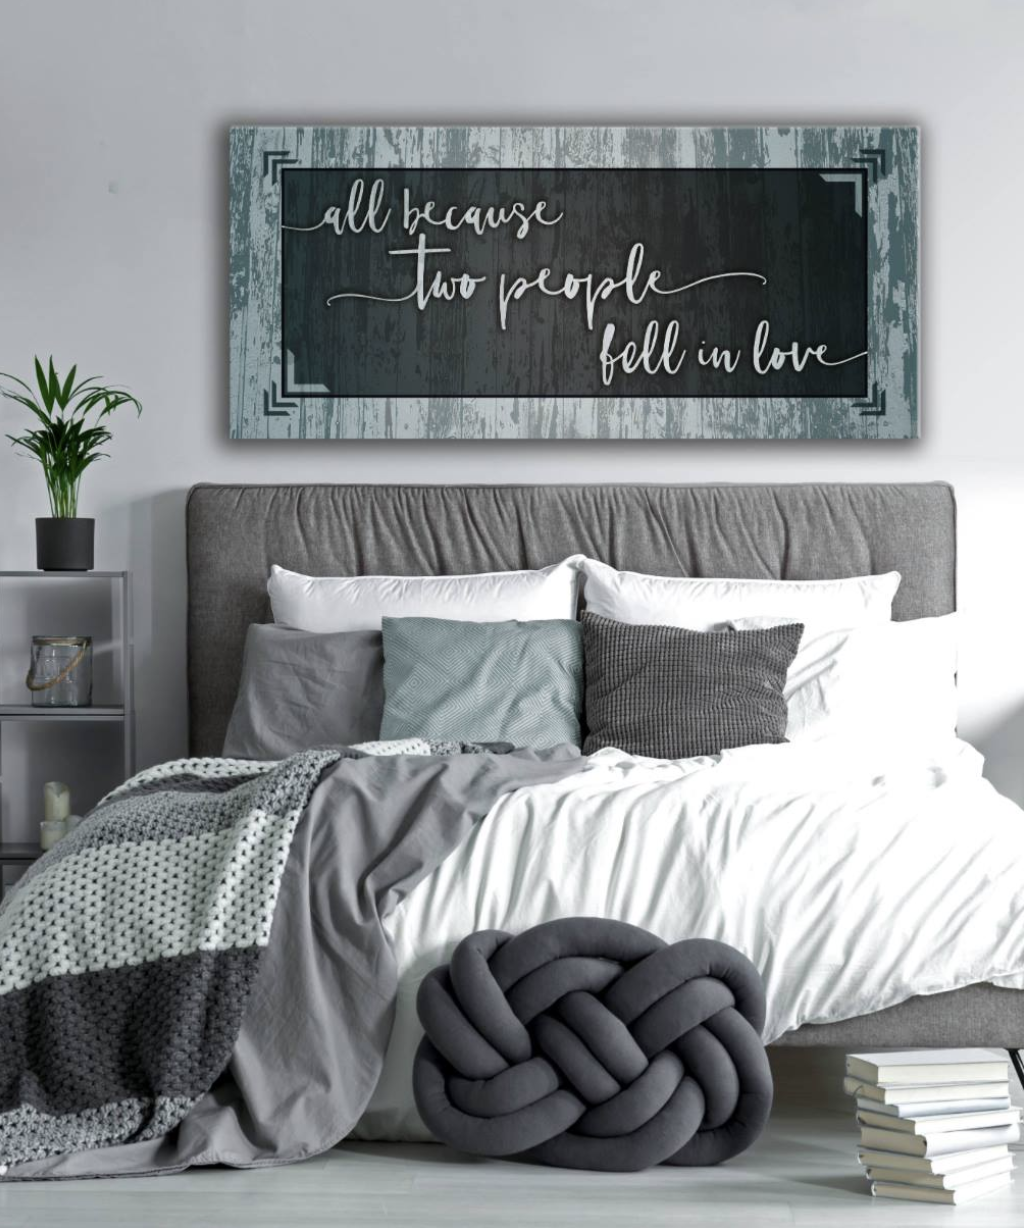 Bedroom Wall Art: Two People Wall Art 2 Sizes Available (Wood Frame Ready To Hang)